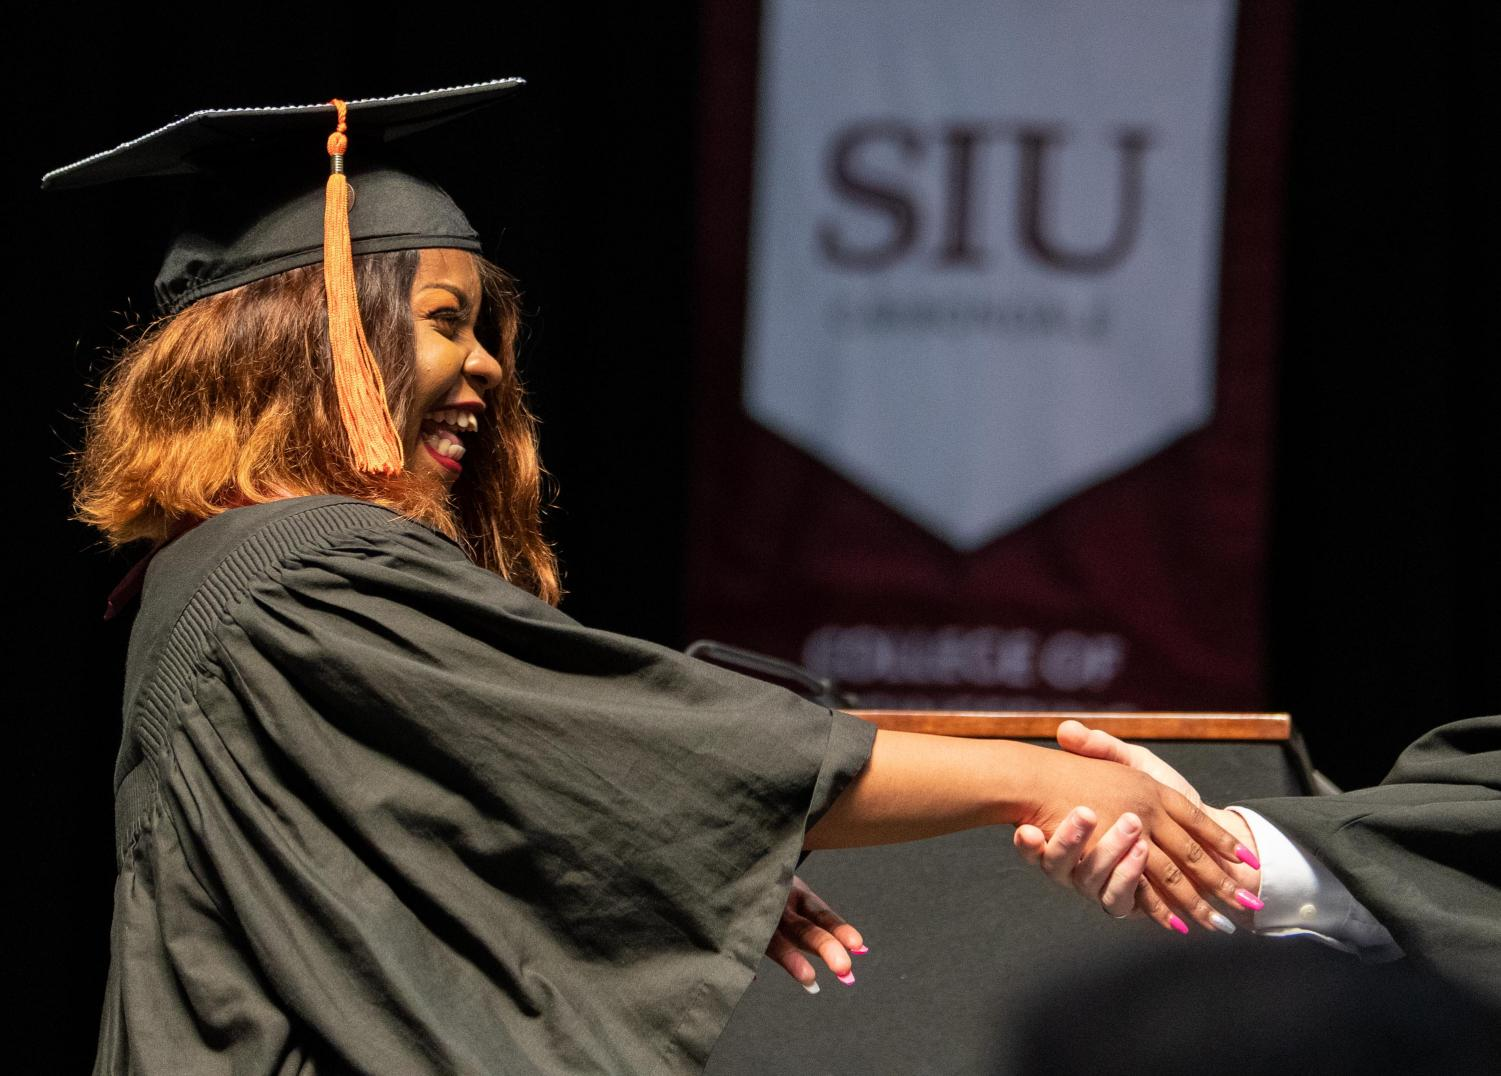 Marie-Esperanoce+Namage+Baseleba+reacts+while+receiving+her+diploma+on+Saturday%2C+May+11%2C+2019+during+the+2019+commencement+inside+the+SIU+Arena.+Baseleba%2C+from+the+Democratic+Republic+of+Congo%2C+received+her+degree+in+Computer+Engineering.